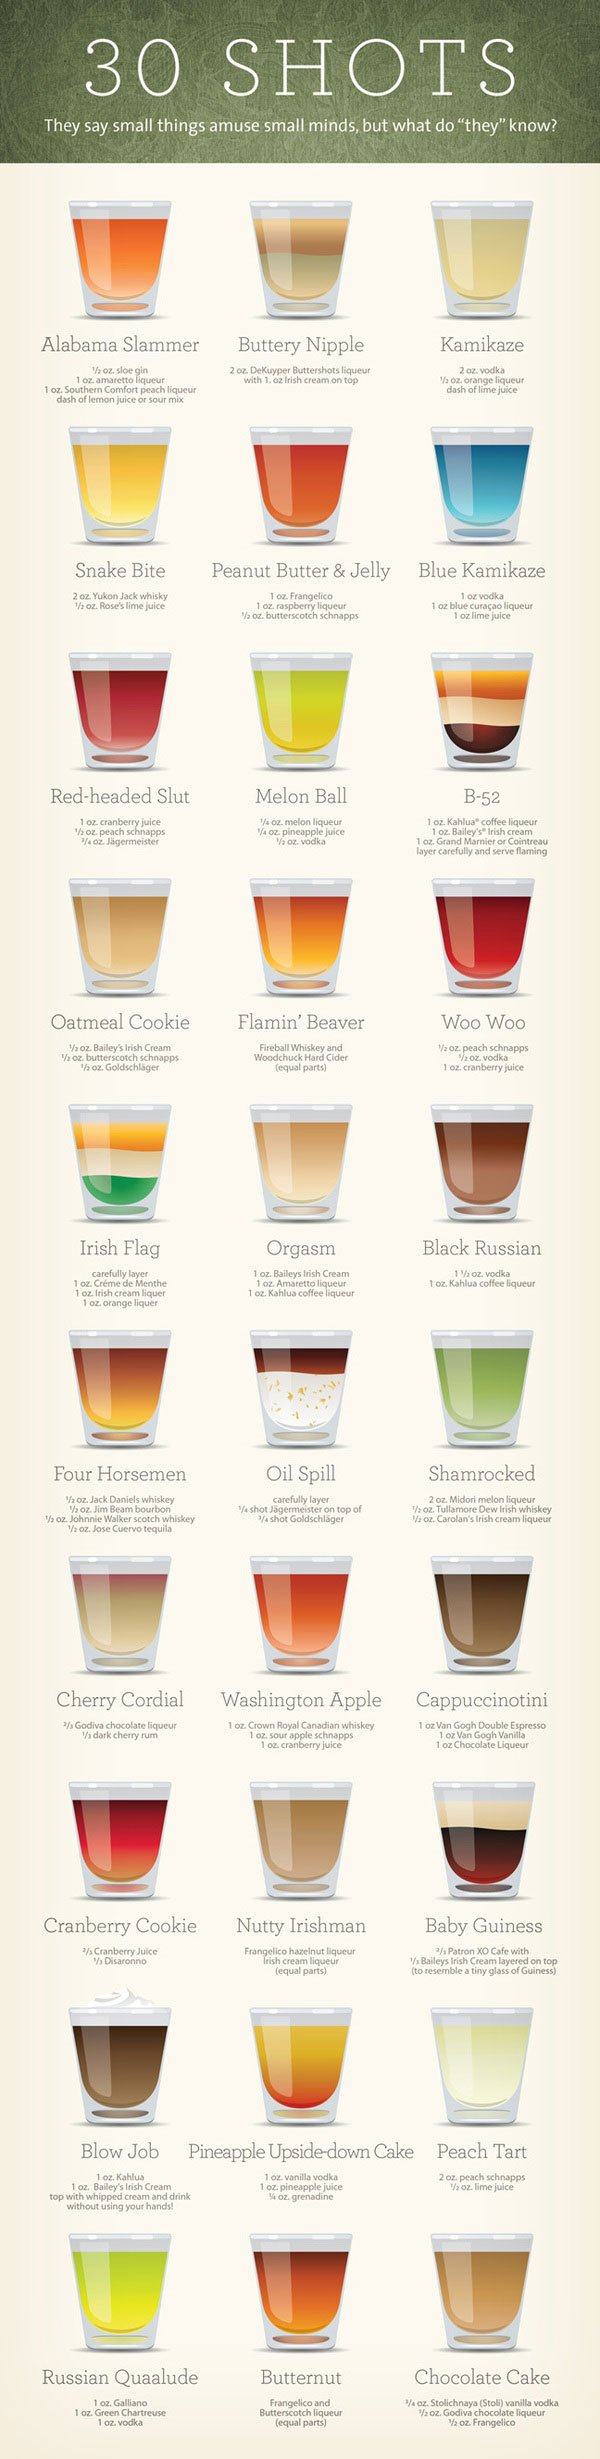 Cocktail-Drink-Infographic